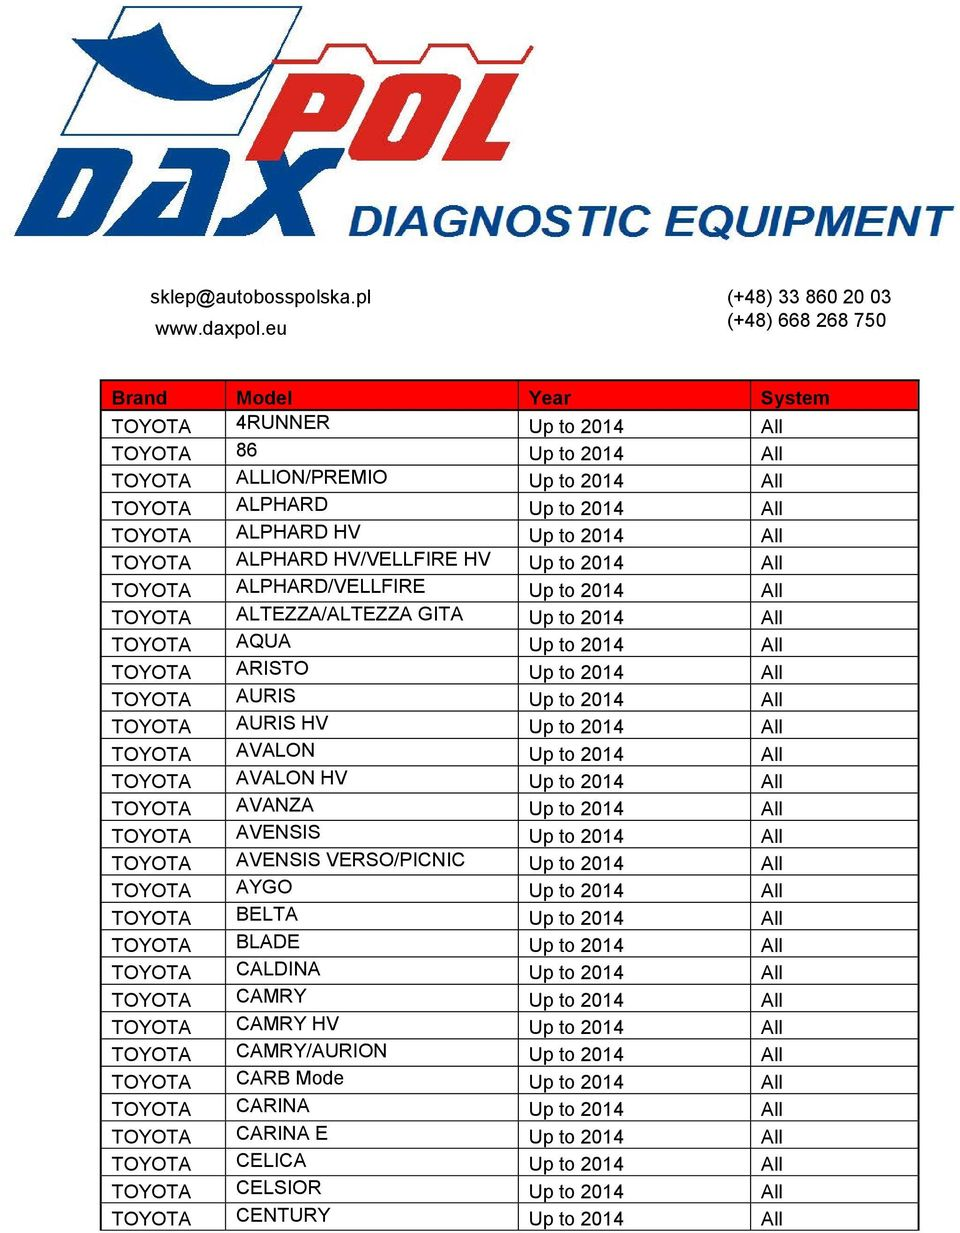 Wiring diagrams toyota avanza project 06 crown vic fuse box diagram 48 48 pdf page 1 20867523 sklep autobosspolska pl 48 33 860 20 03 www daxpol eu 48 668 268 750html wiring diagrams toyota avanza project asfbconference2016 Images